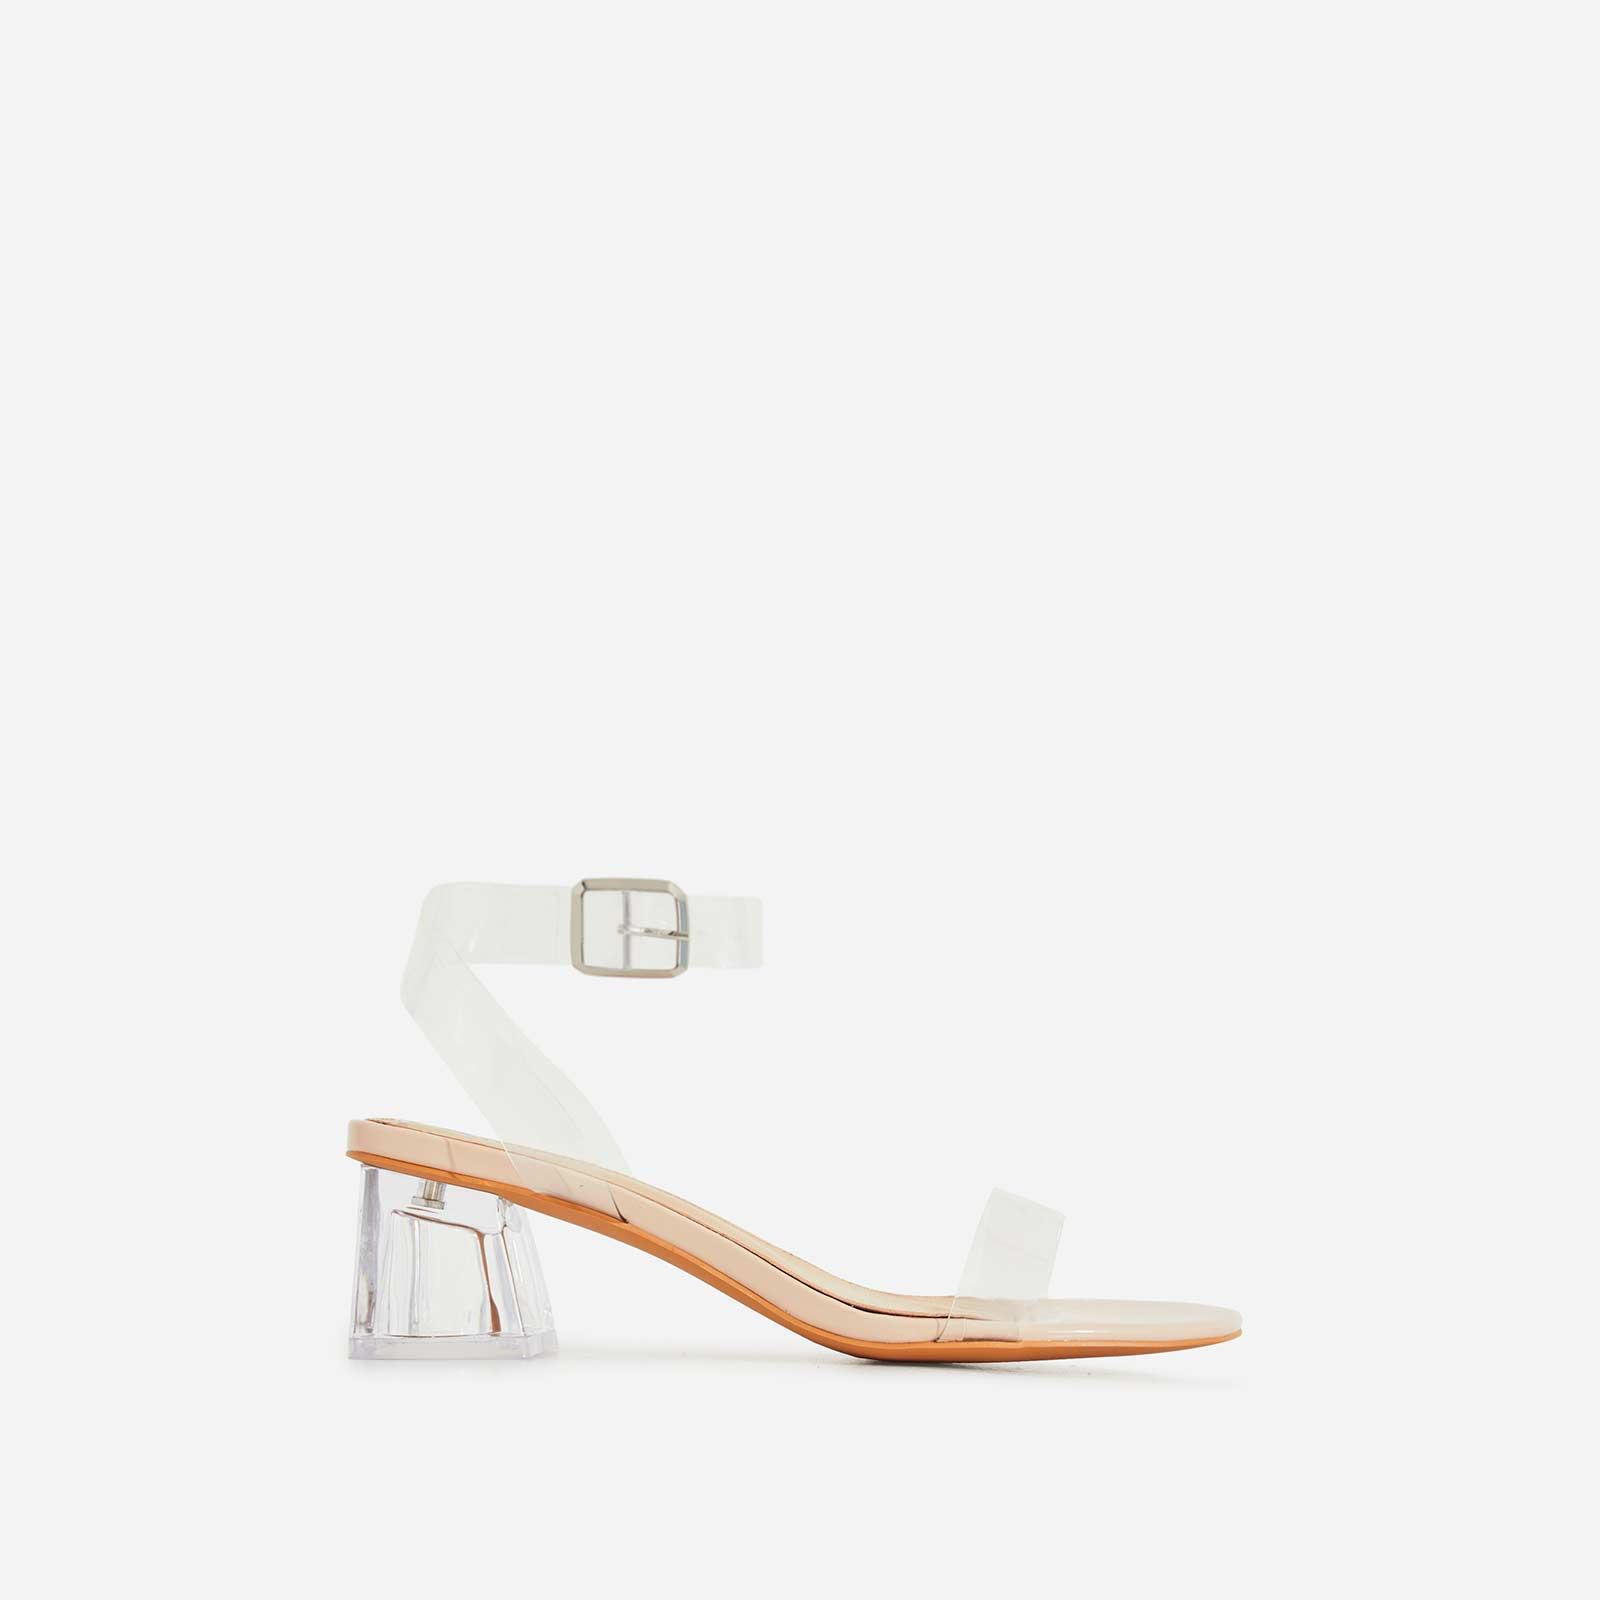 Alya Barley There Perspex Mid Block Heel In Nude Patent